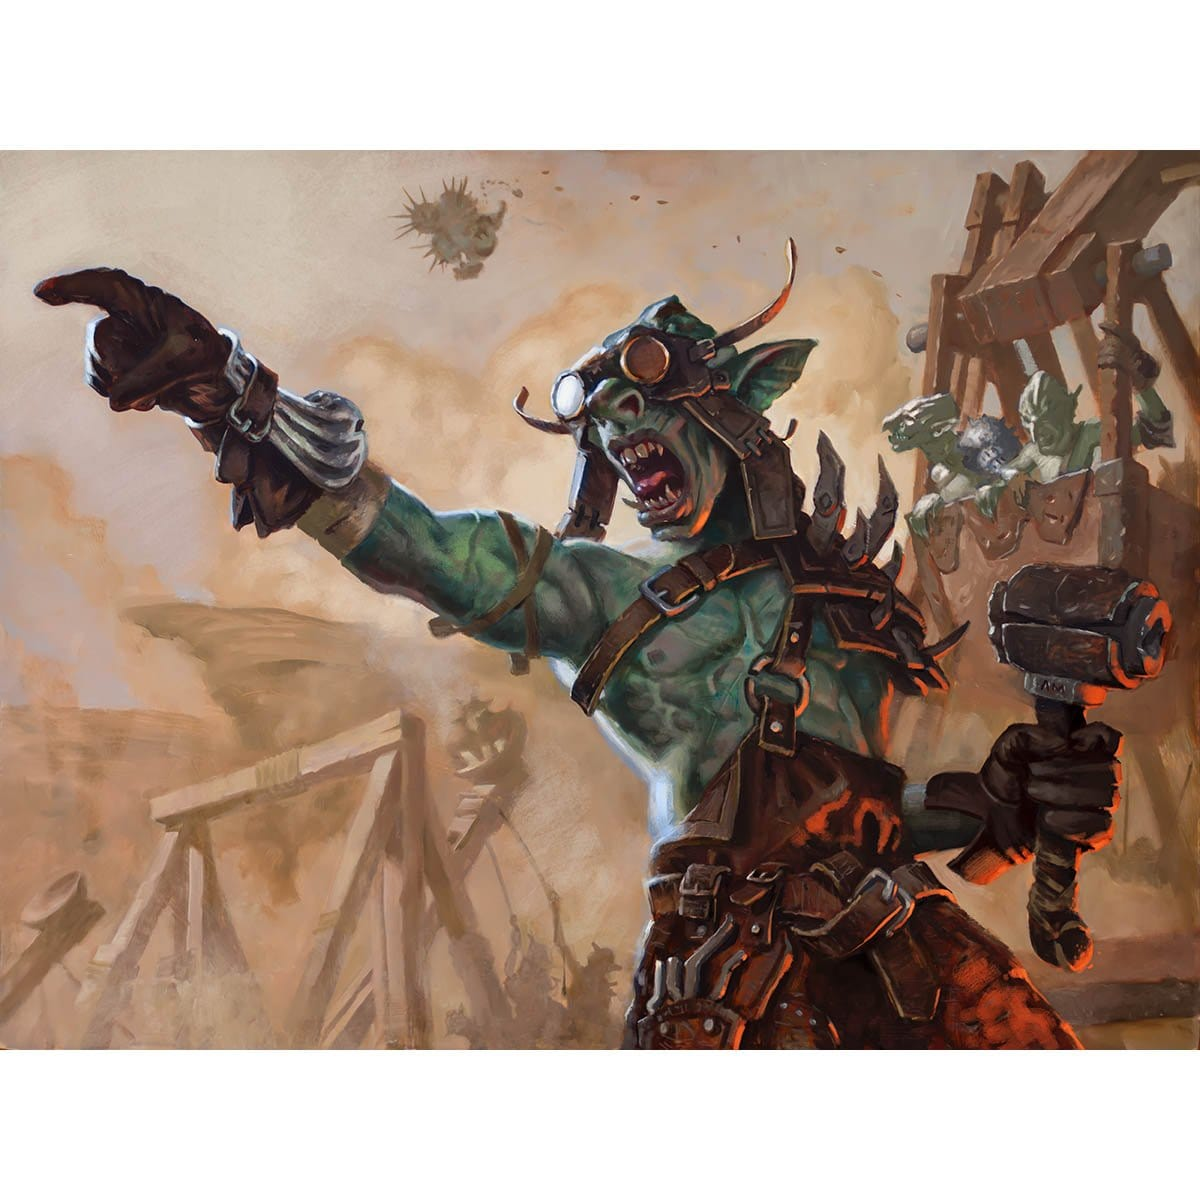 Siege-Gang Commander Print - Print - Original Magic Art - Accessories for Magic the Gathering and other card games